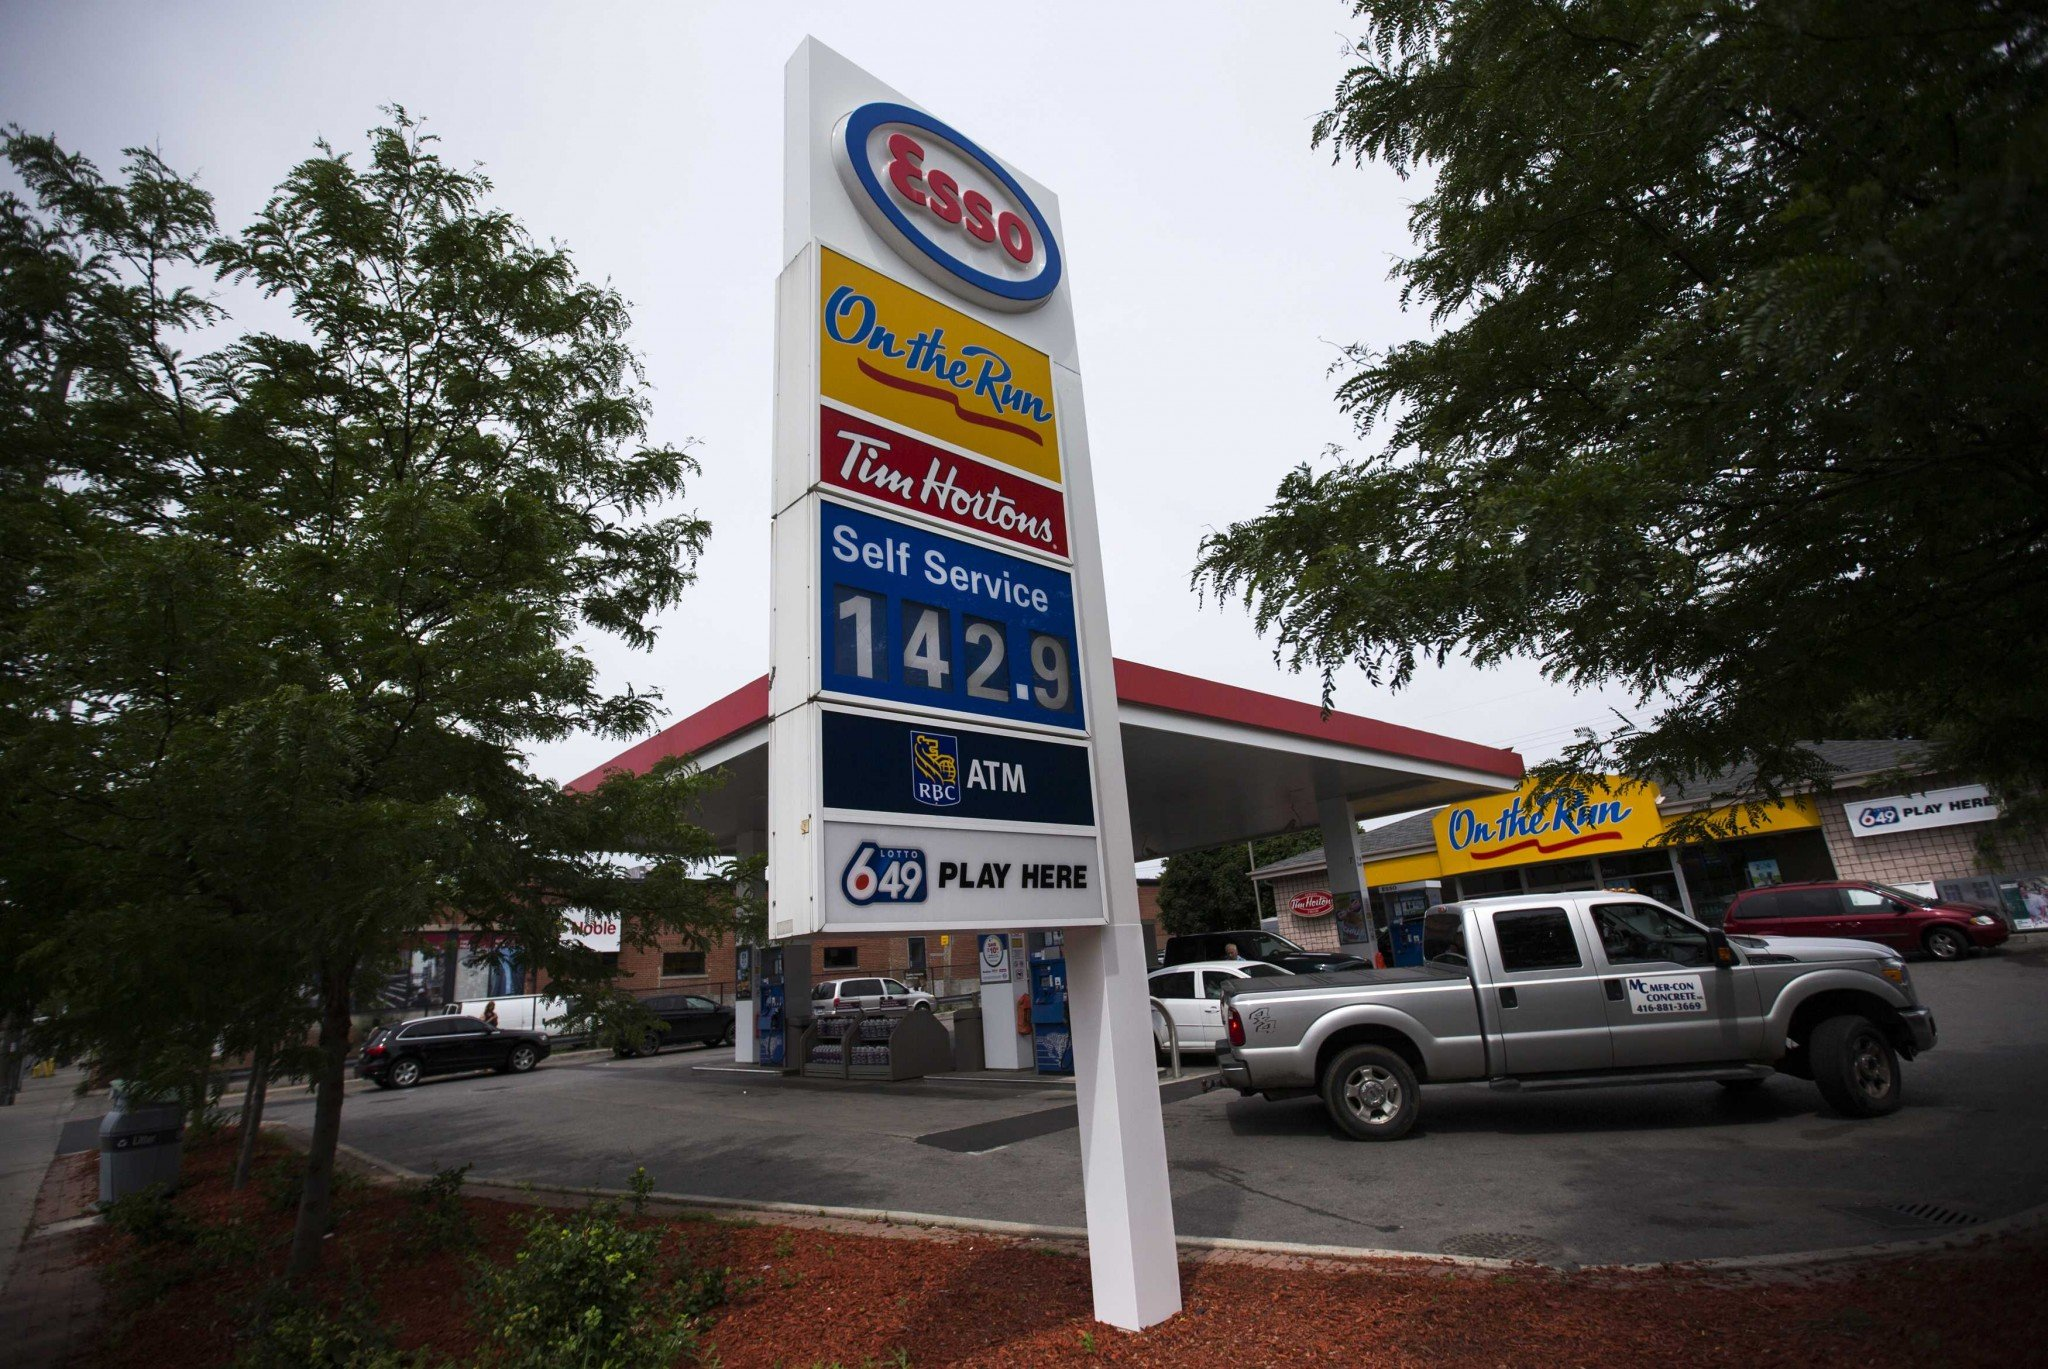 An Esso gas station displays gas prices in Toronto, June 23, 2014. (Reuters)